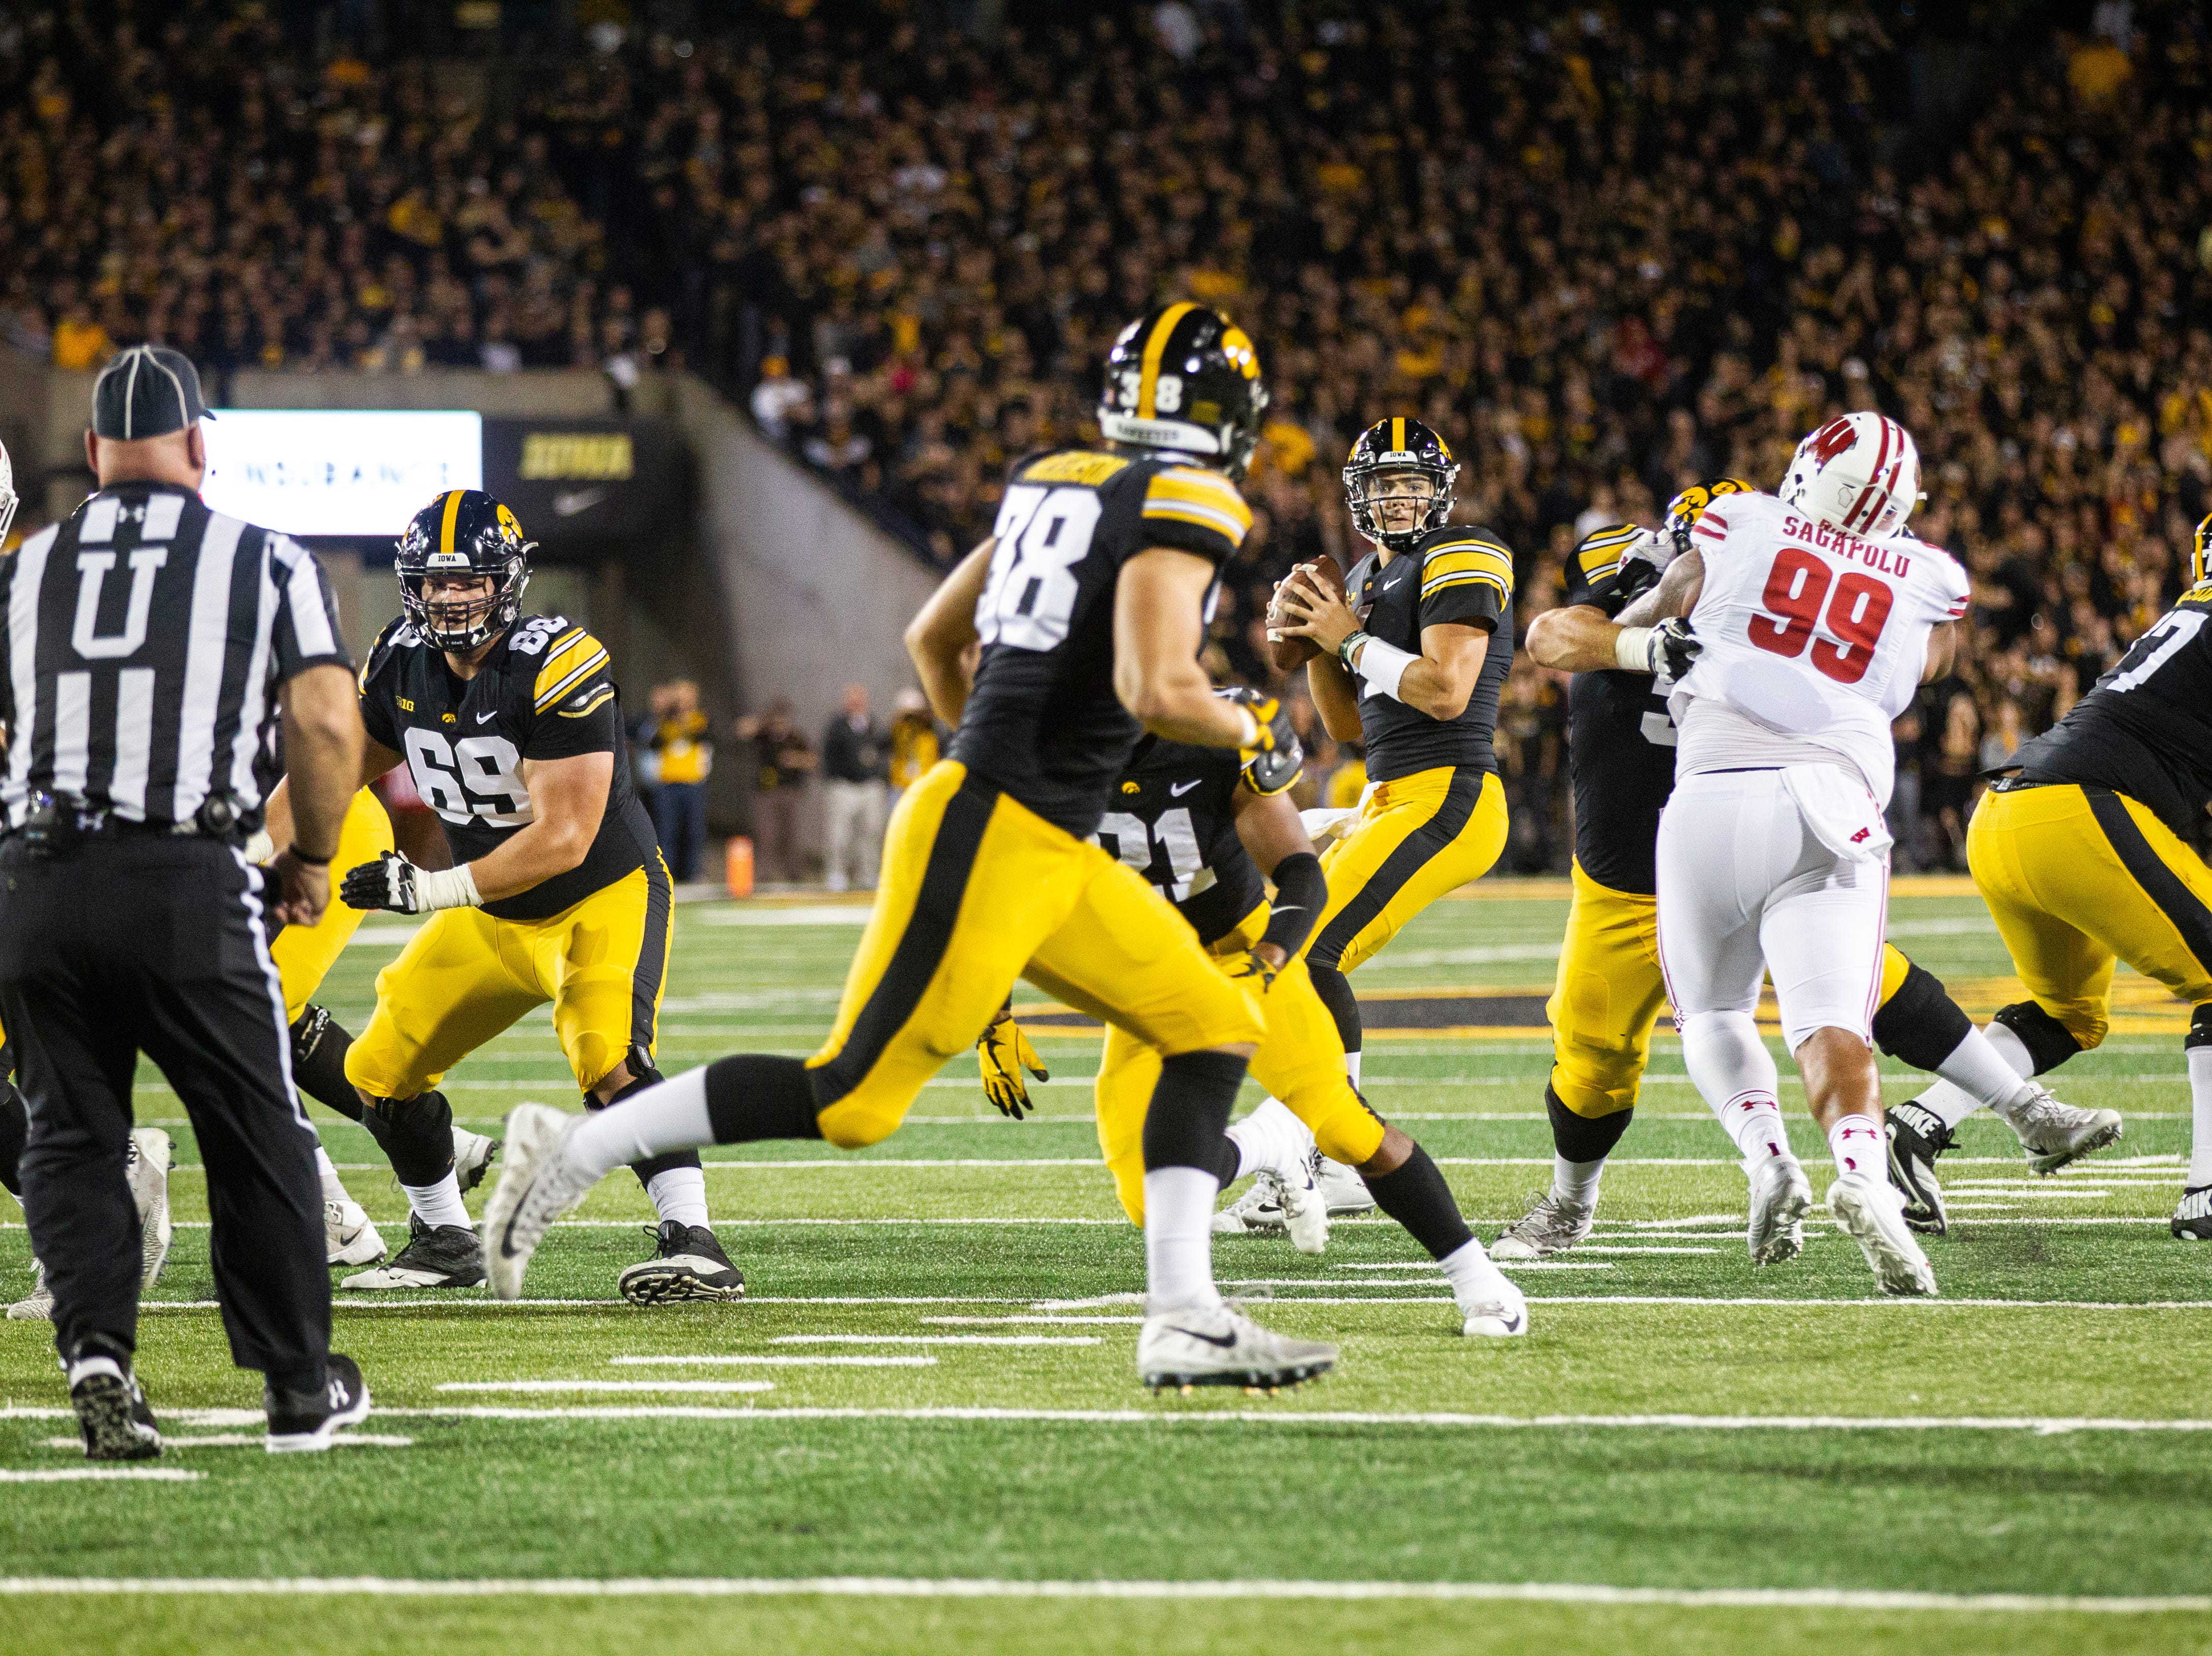 Iowa quarterback Nate Stanley (4) during an NCAA football game on Saturday, Sept. 22, 2018, at Kinnick Stadium in Iowa City.